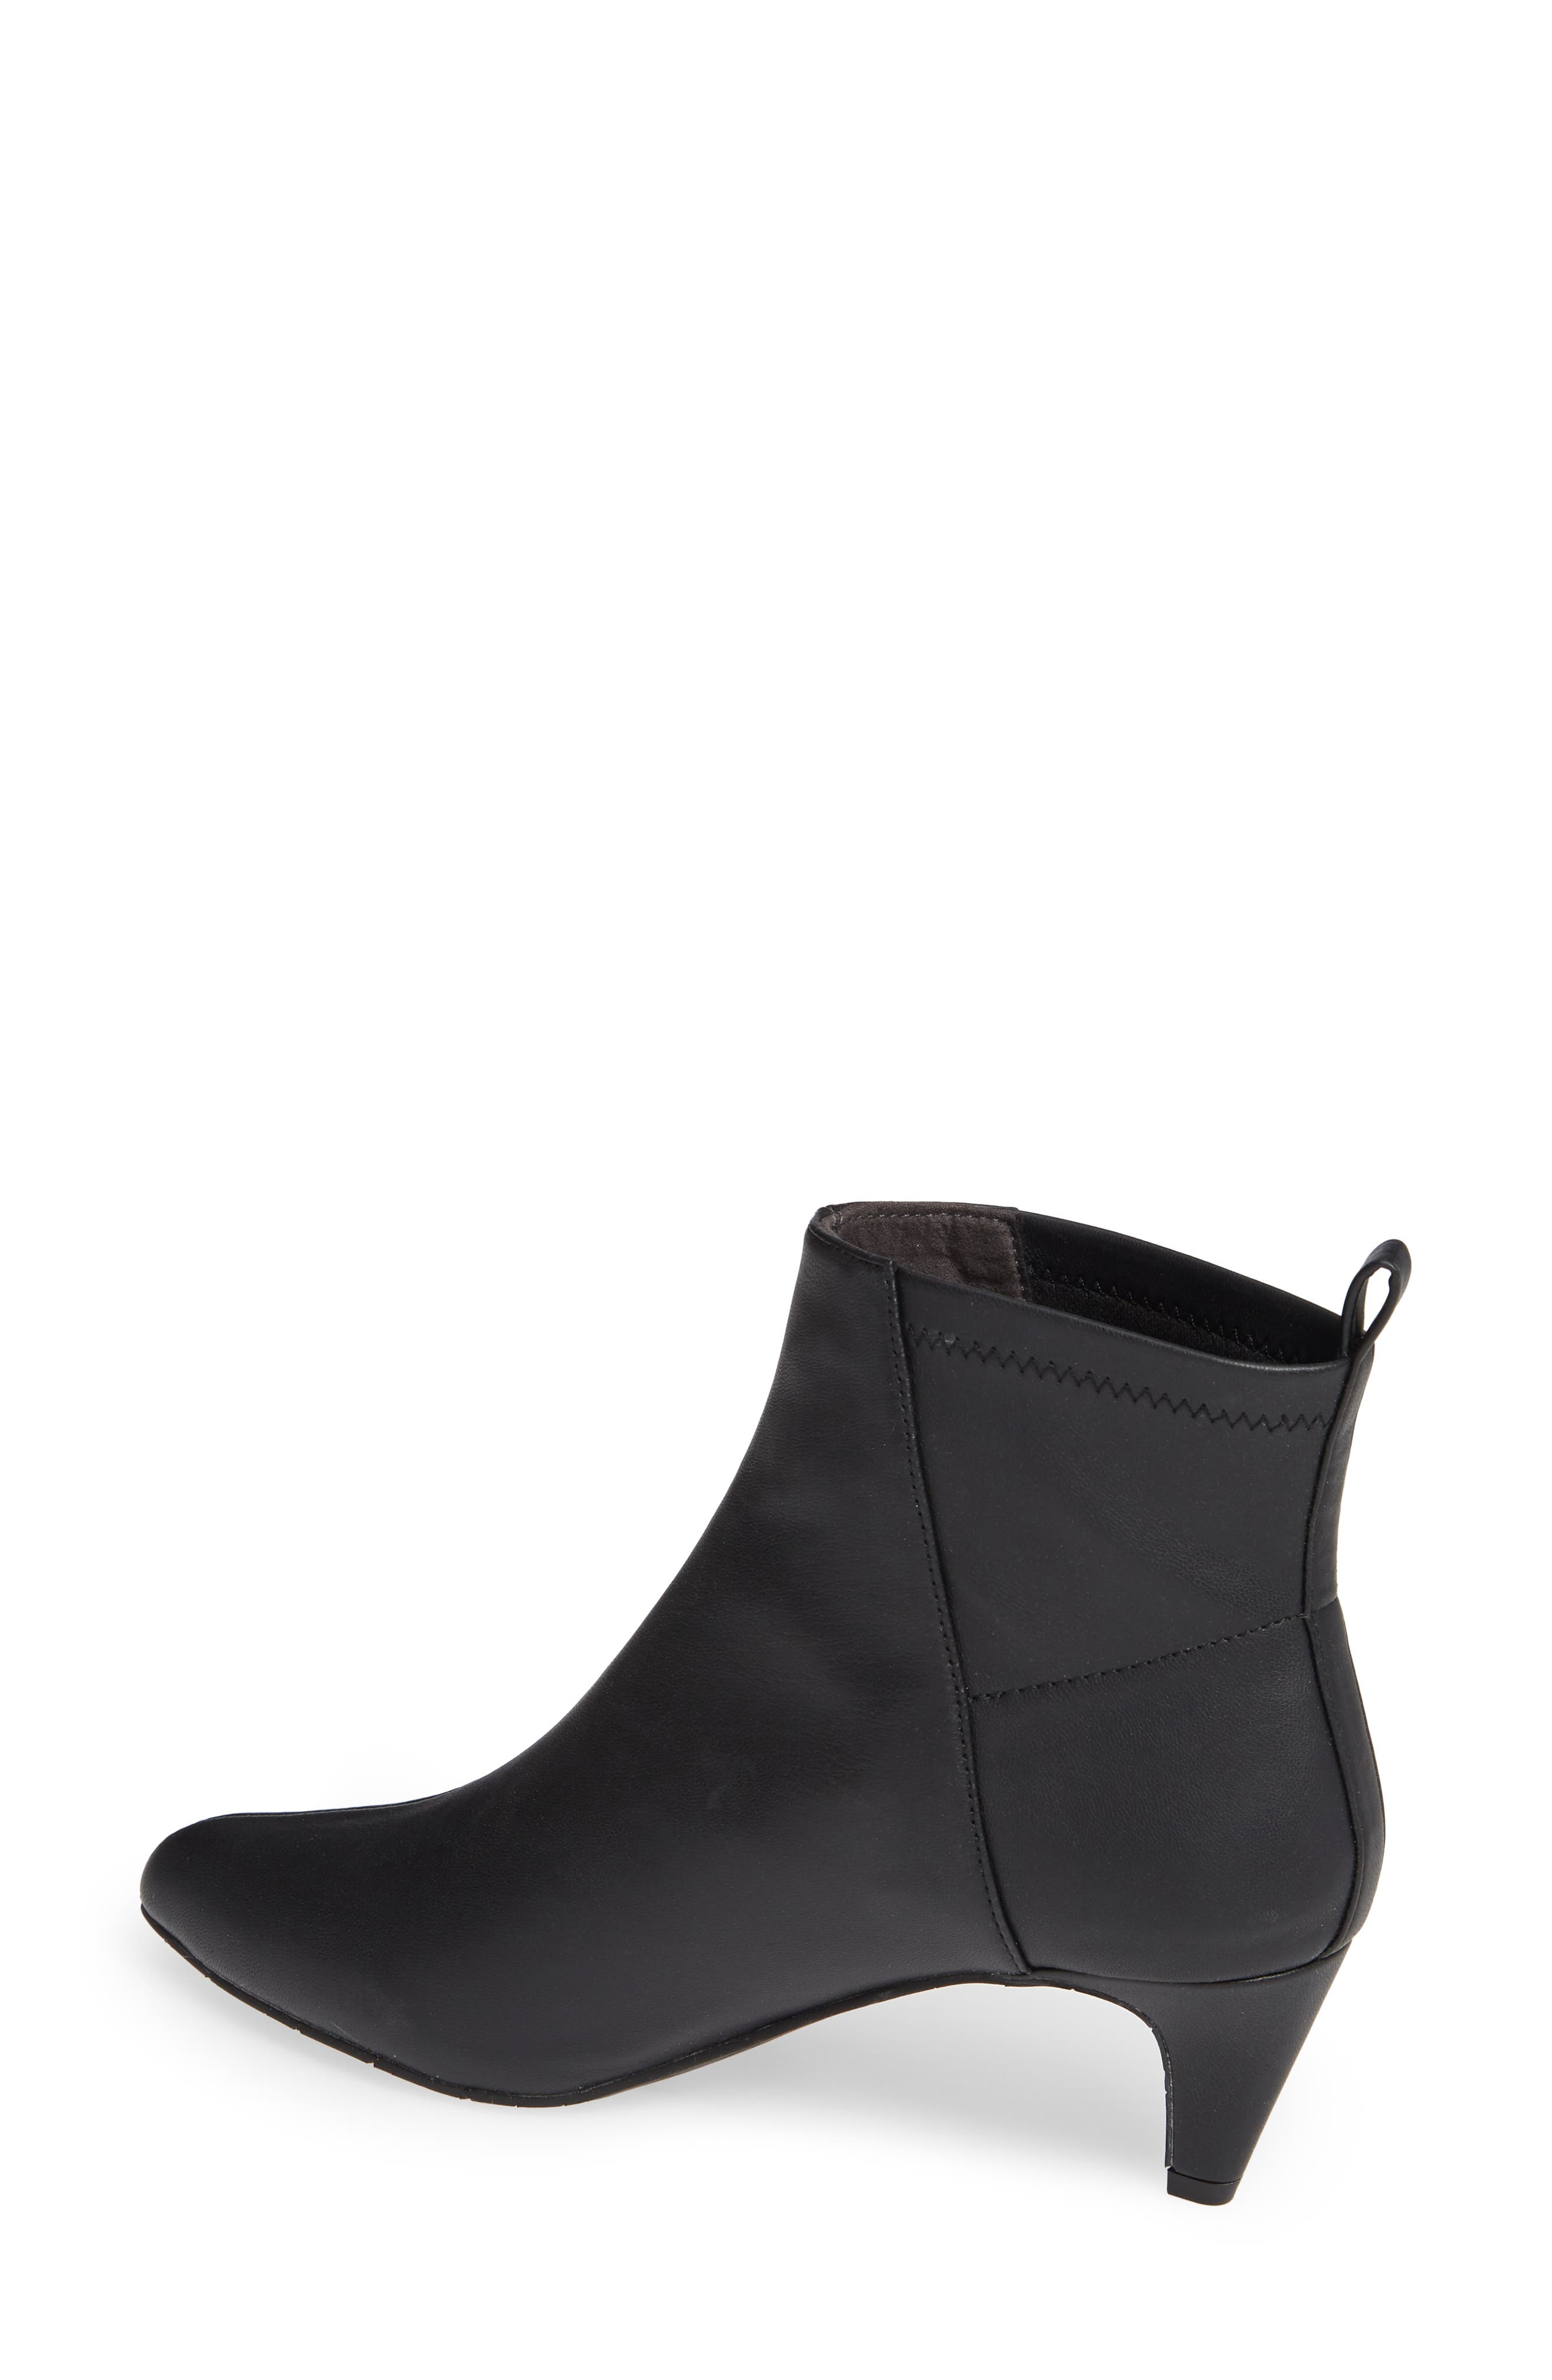 Millimeter Pointy Toe Bootie,                             Alternate thumbnail 2, color,                             BLACK STRETCH